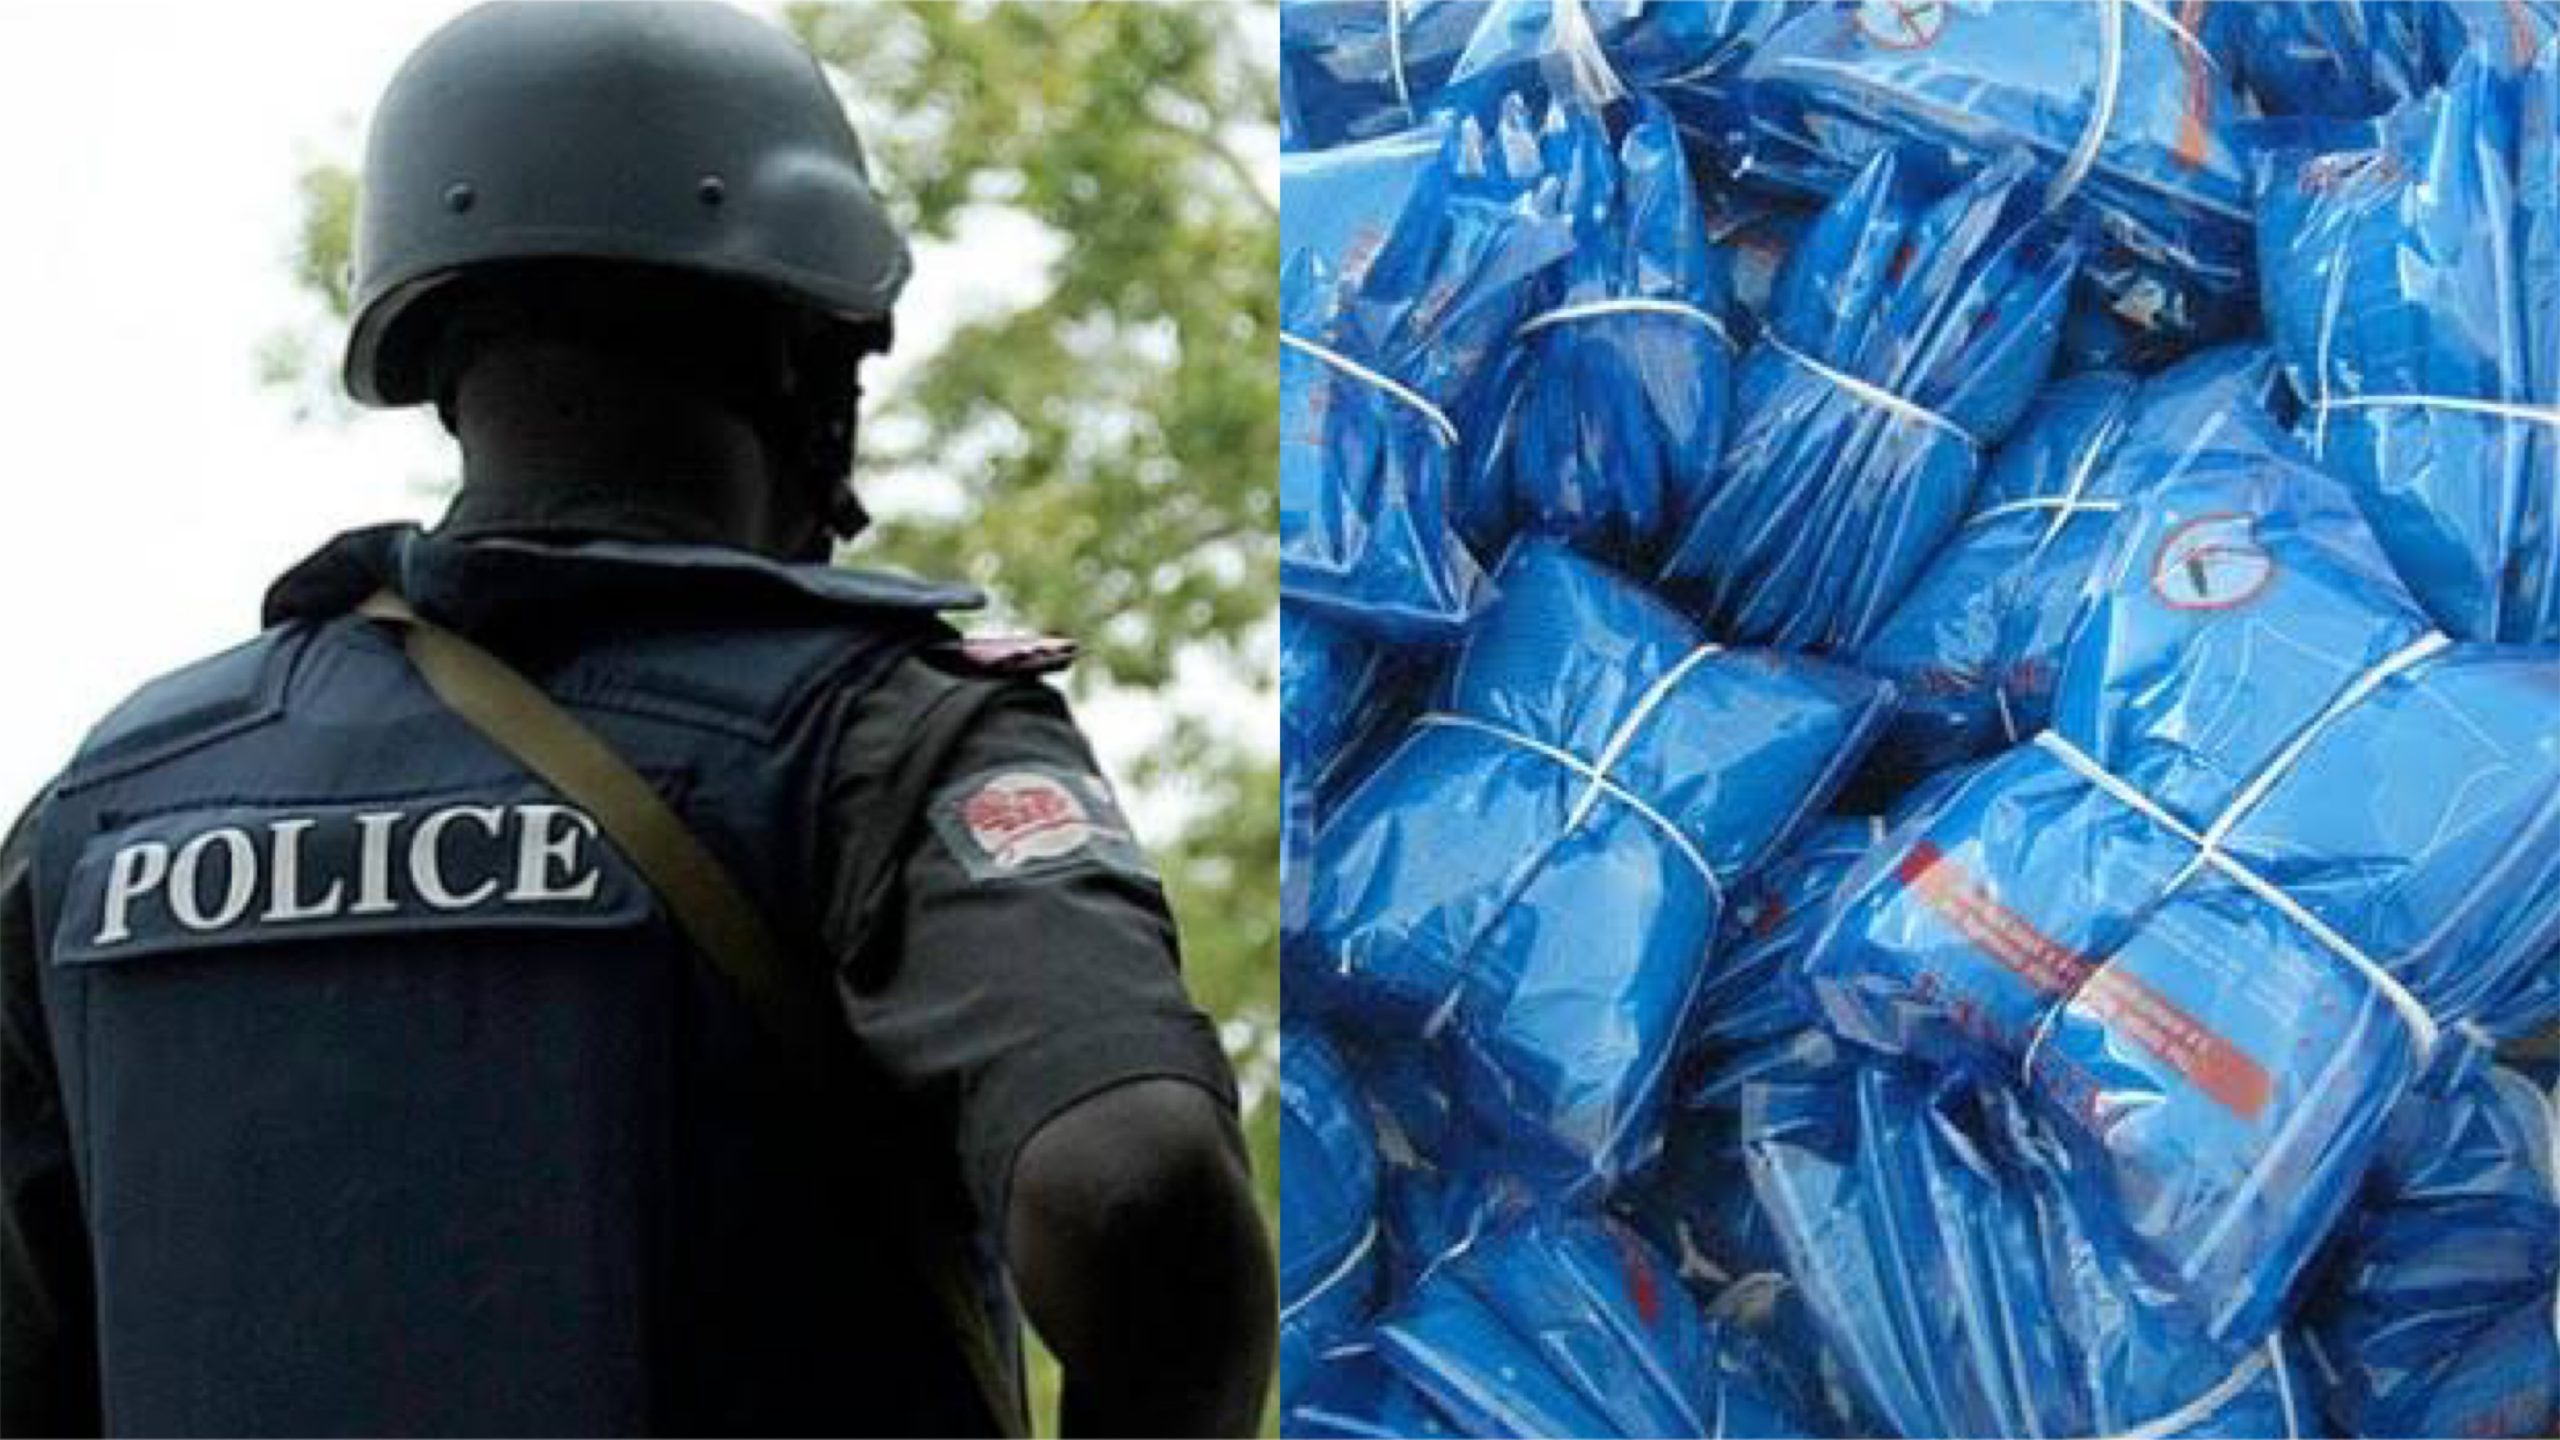 Police and mosquito nets